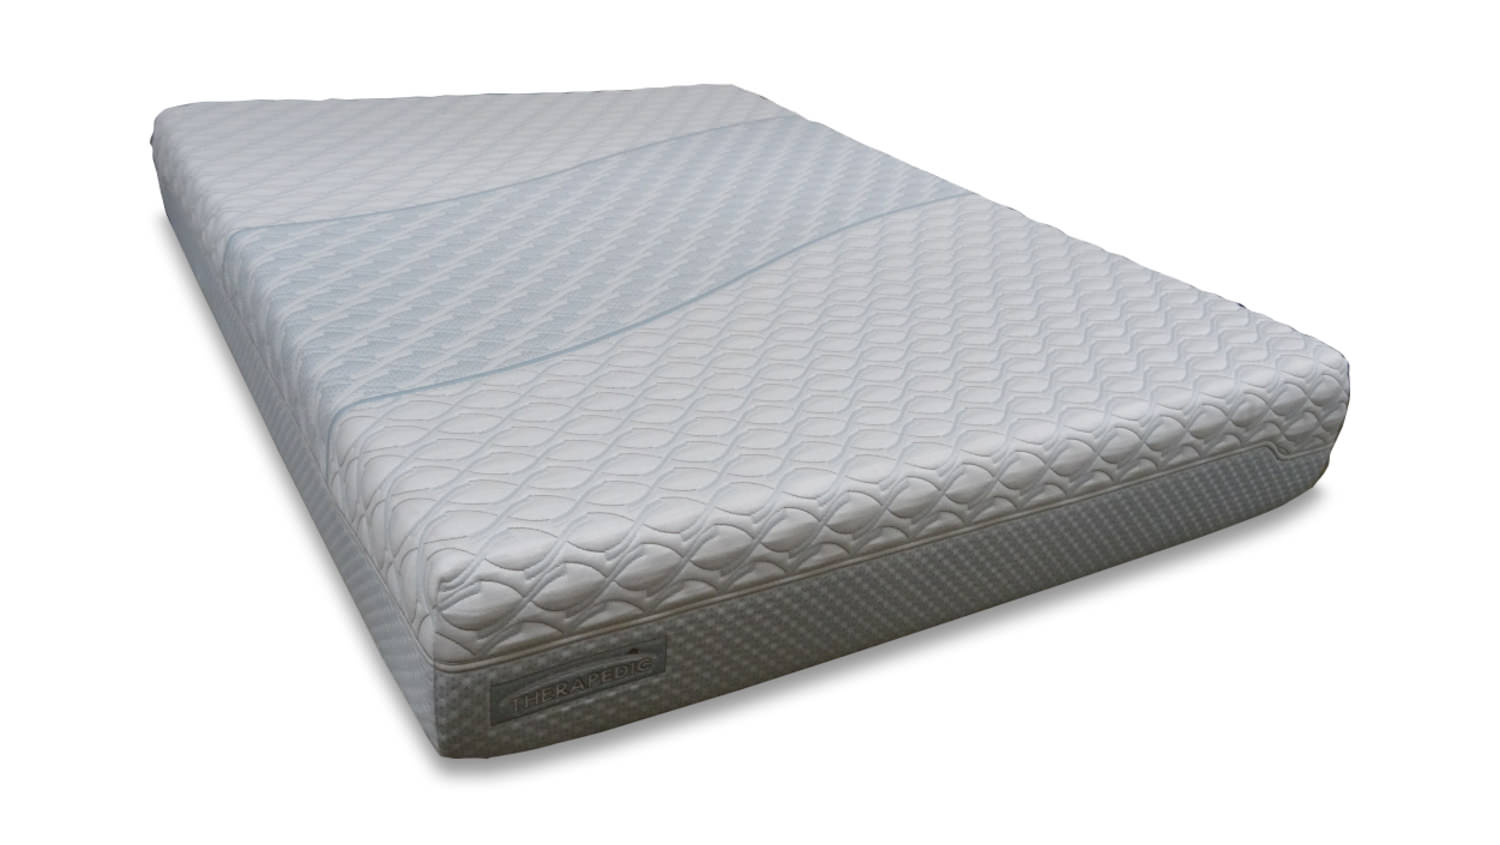 Cool Drift Mattress By Therapedic Dock86